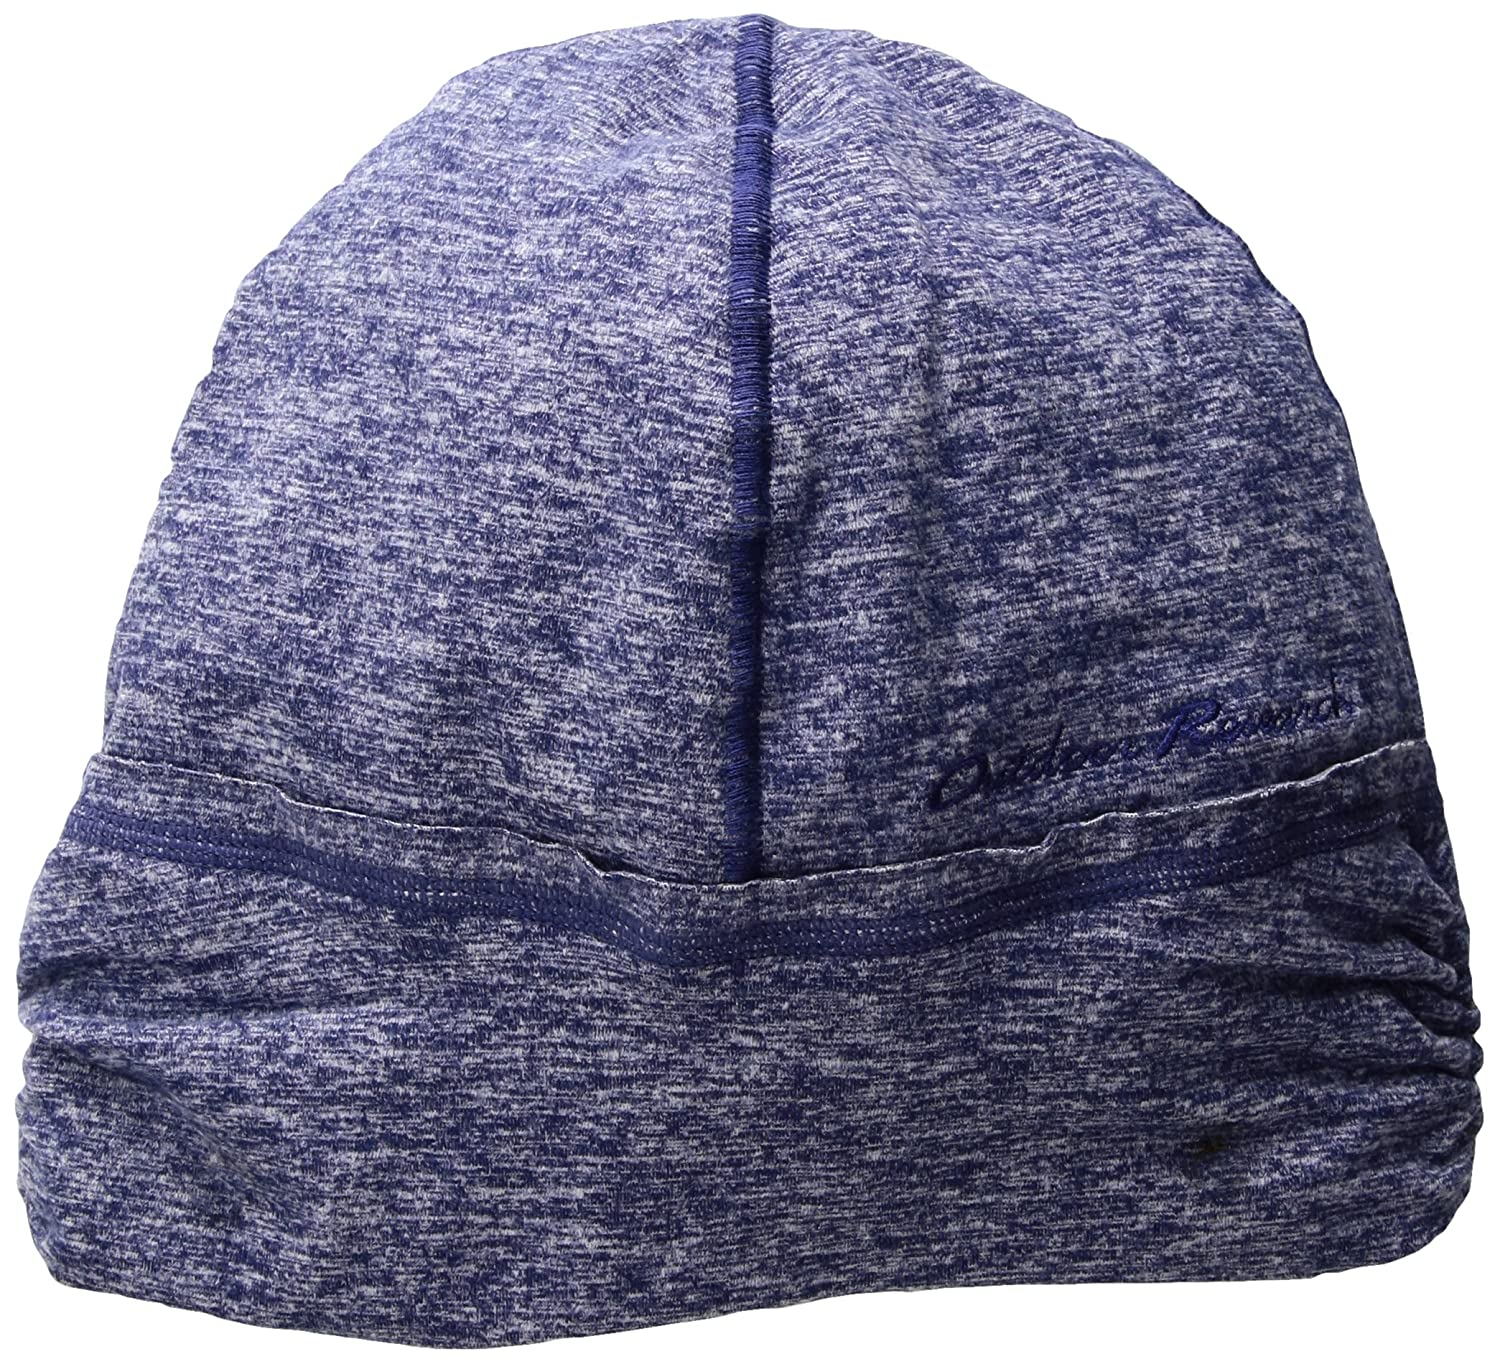 e95cefc7 Outdoor Research Women's Melody Beanie, Blue Violet, 1size: Amazon.ca:  Sports & Outdoors